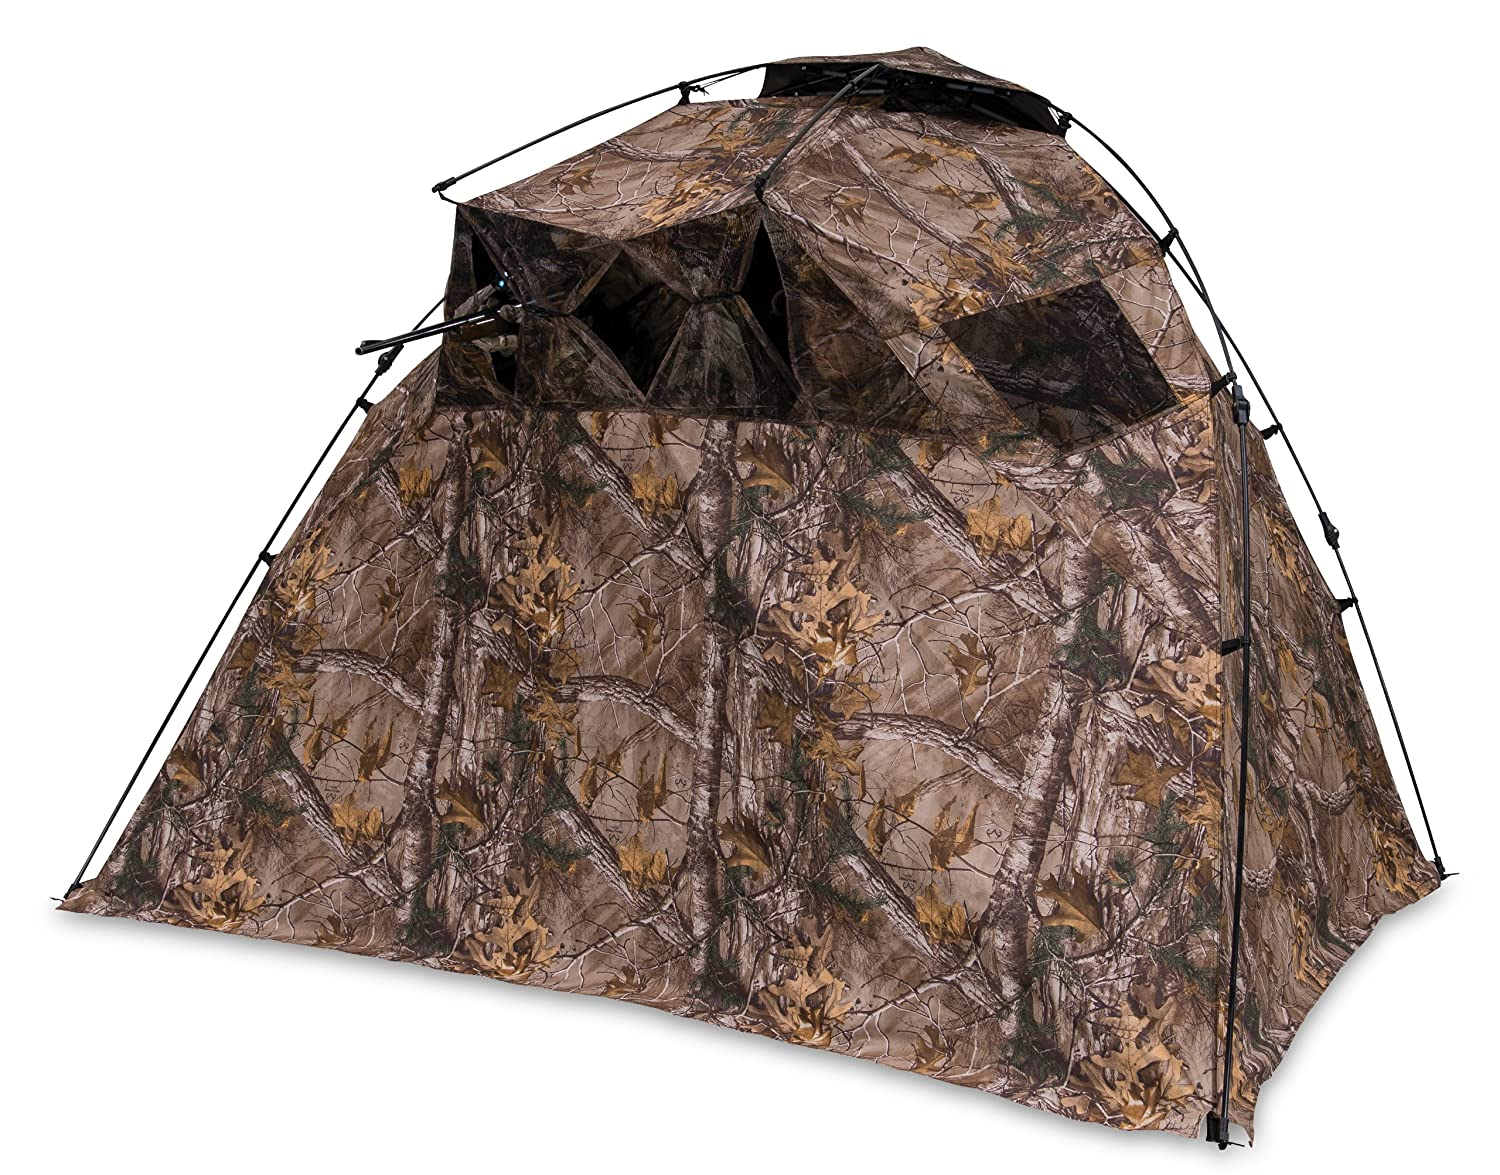 ameristep blinds and for person stealth comfort new post related hunter blind camouflage ground creative hunting zone bow brand reviews gunner